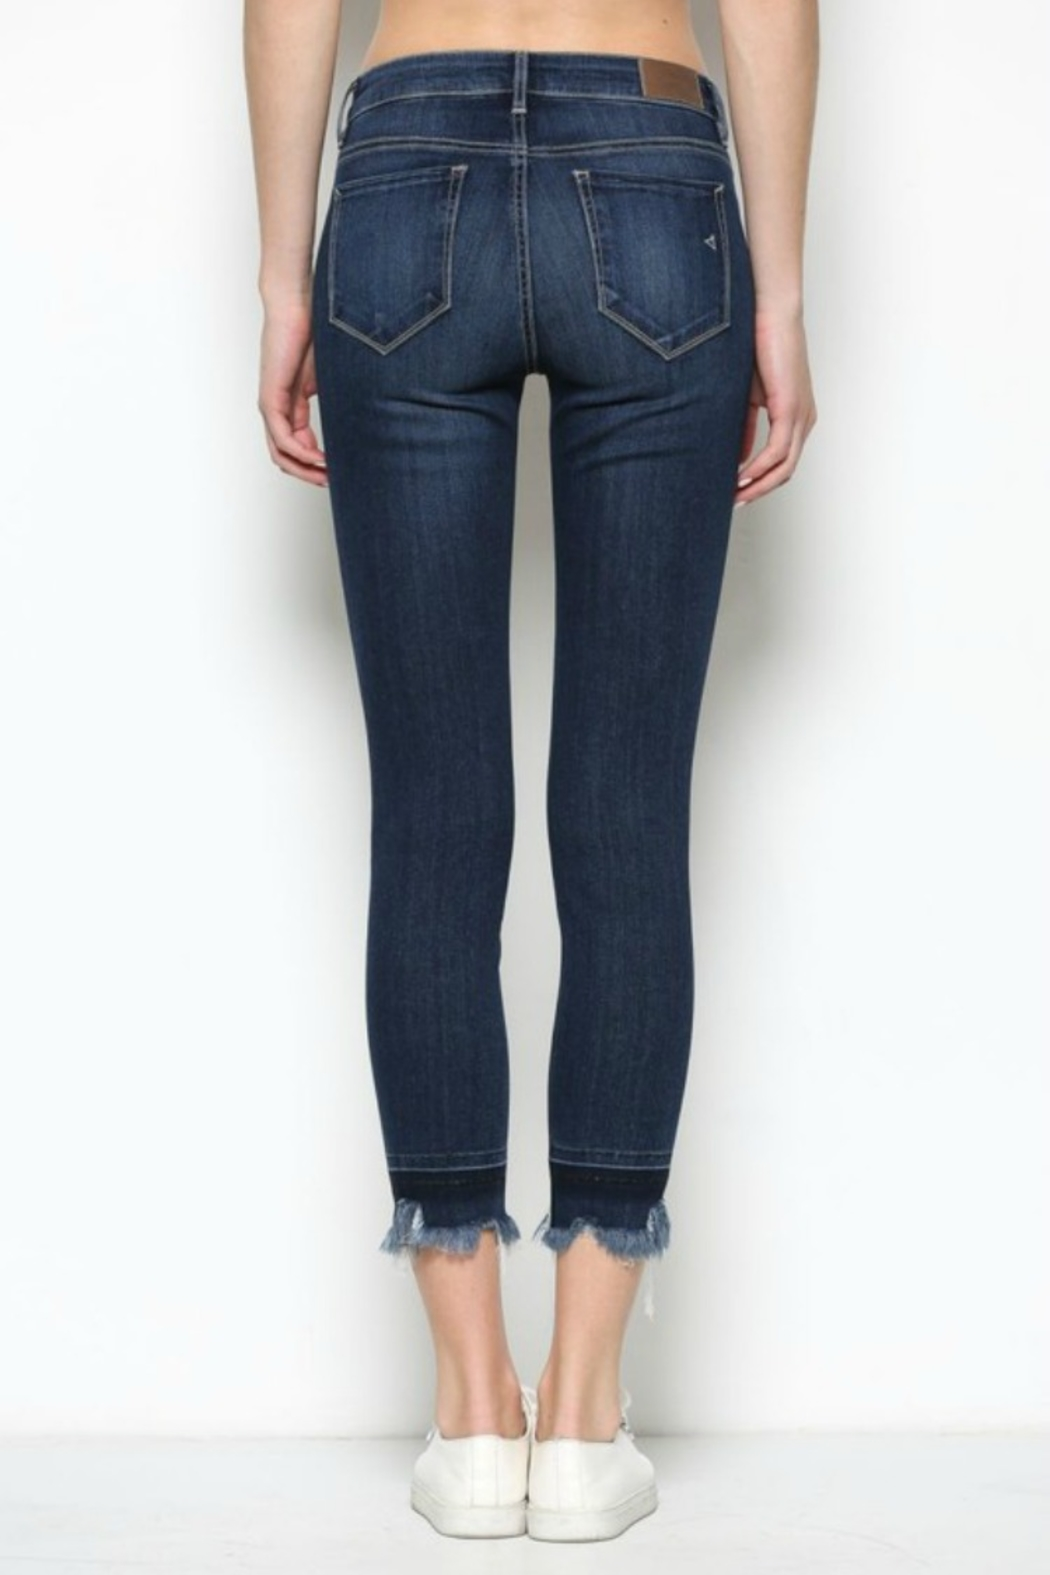 Hidden Jeans HD7452-DK  Dark Wash Released Frayed Hem Skinny - Back Cropped Image